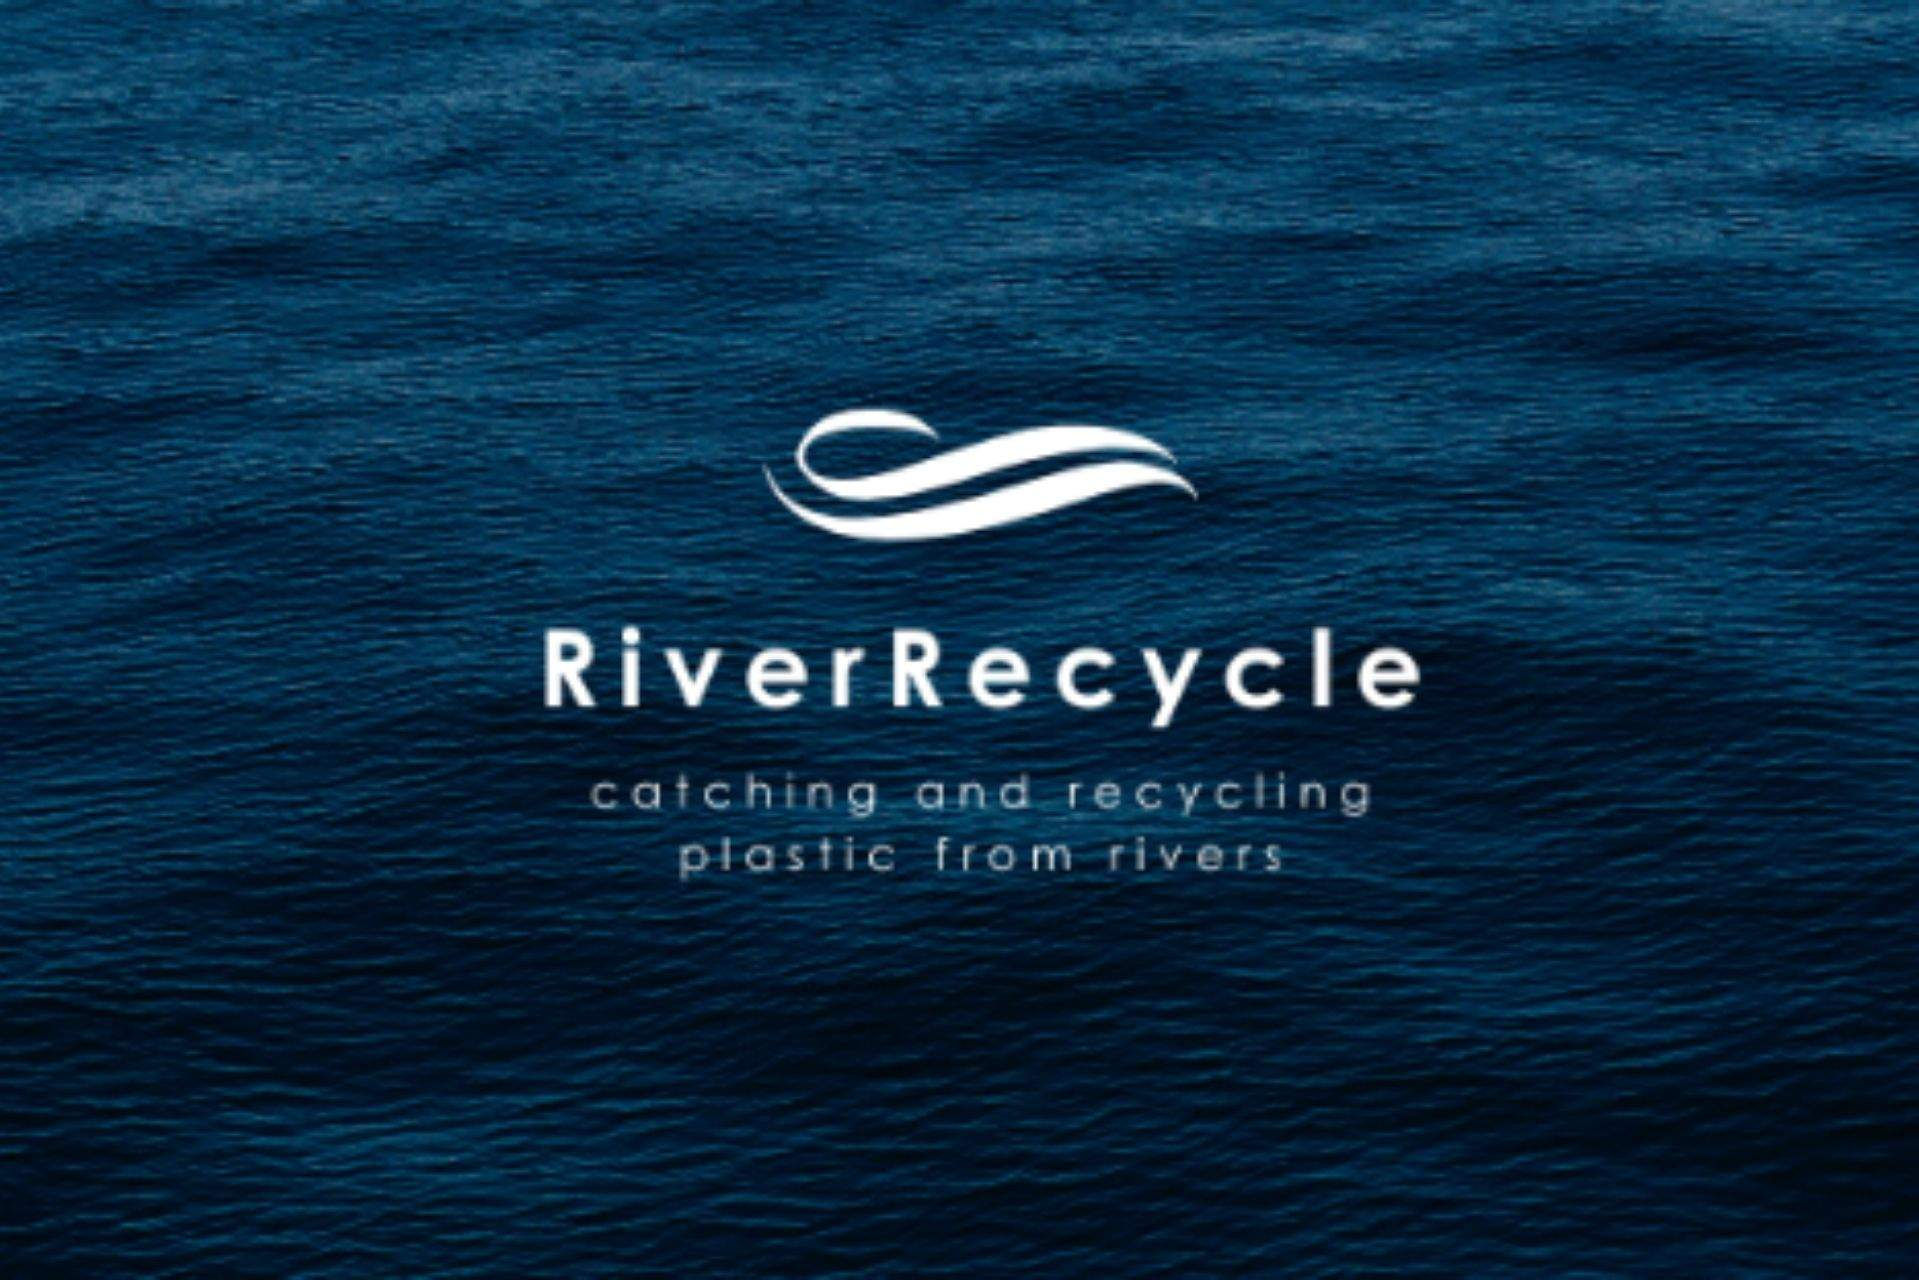 RiverRecycle upcycling Mumbai India Environmental NGO Earth5R